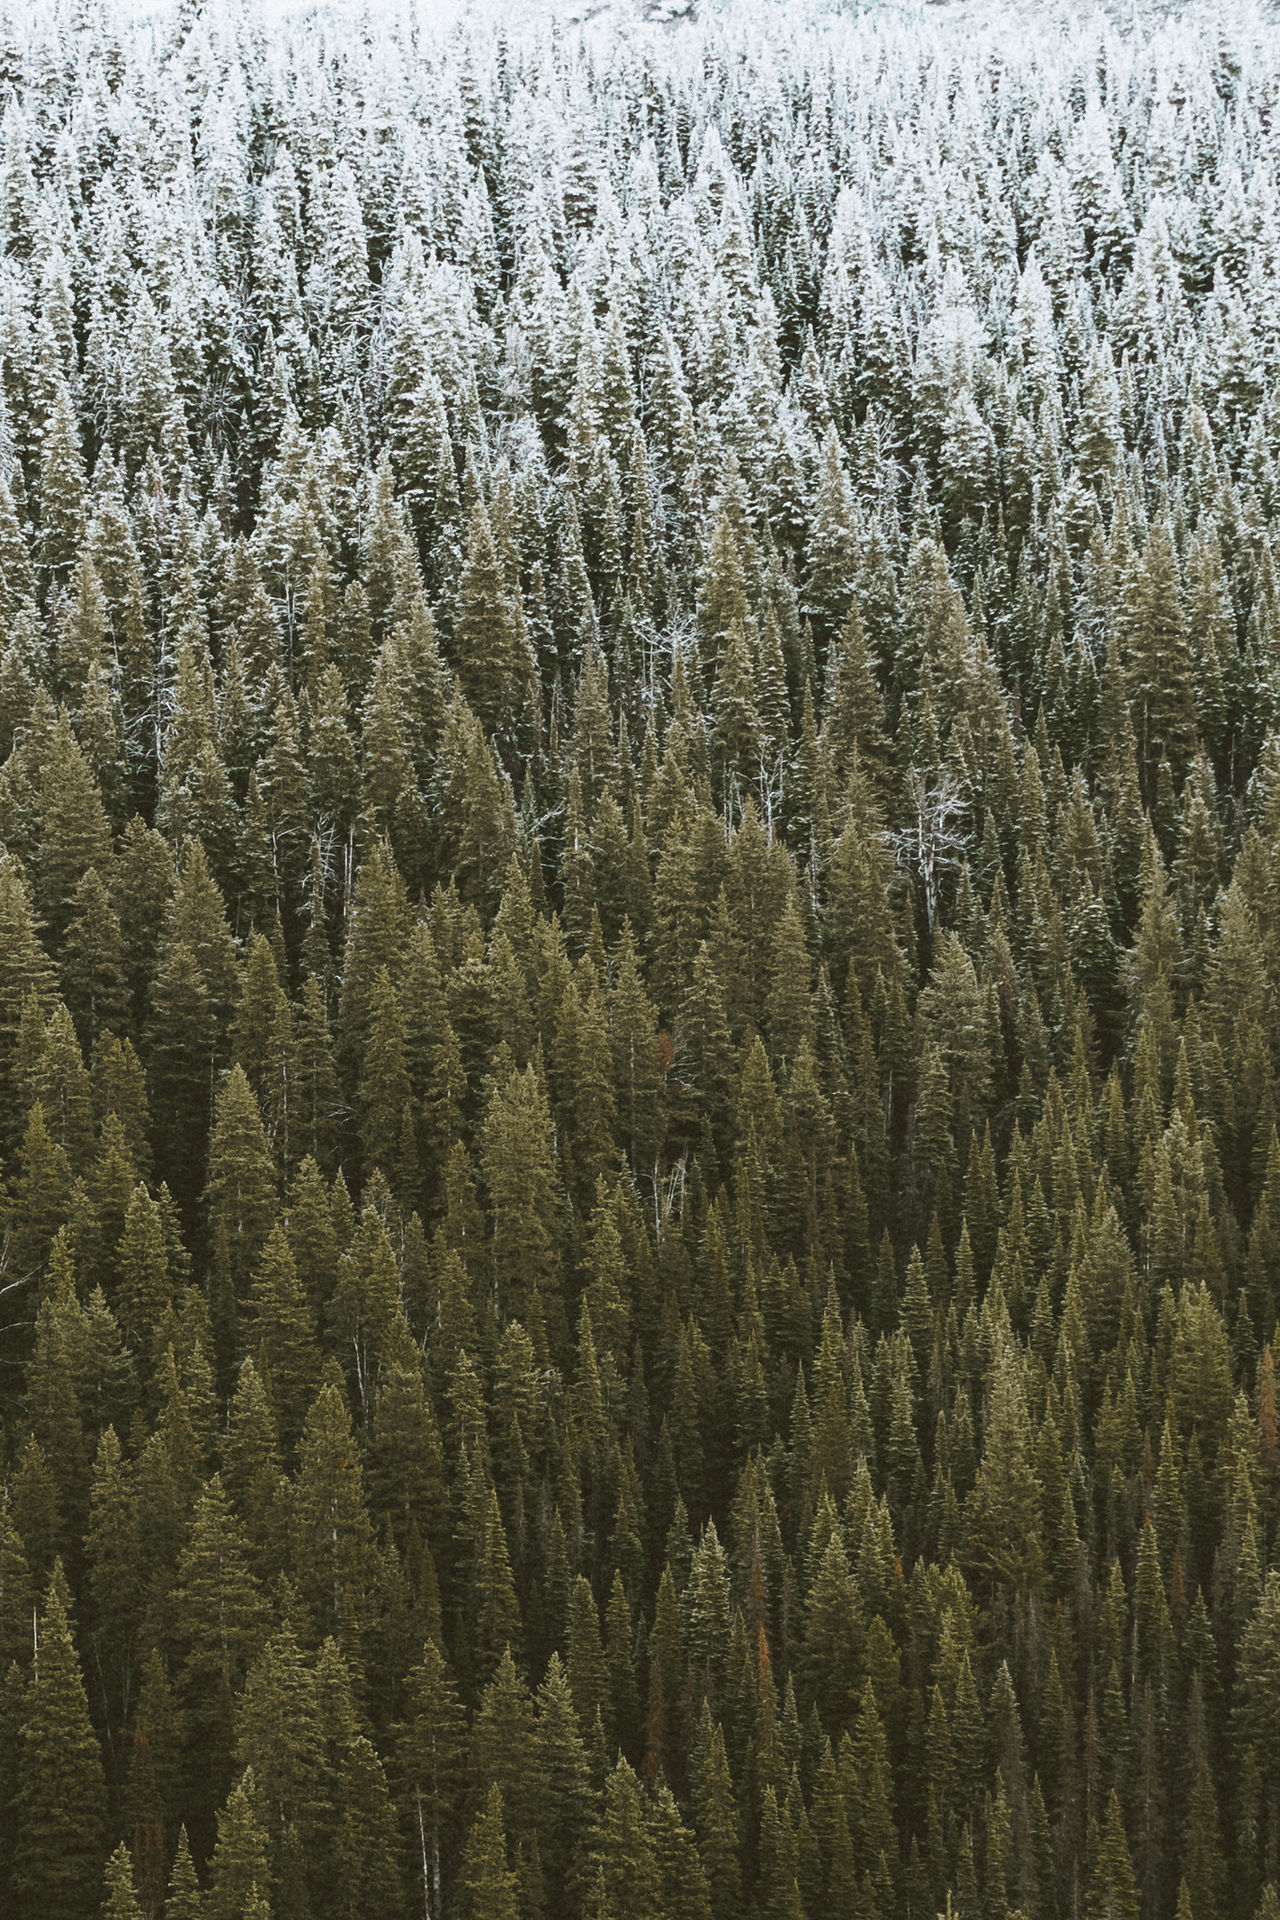 Snow-capped Nature Outdoors No People Backgrounds Textured  Nature Tree Evergreen Snowcapped Alpine Non Urban Scene Winter Cold Temperature Mountain Beauty In Nature Hiking Forest